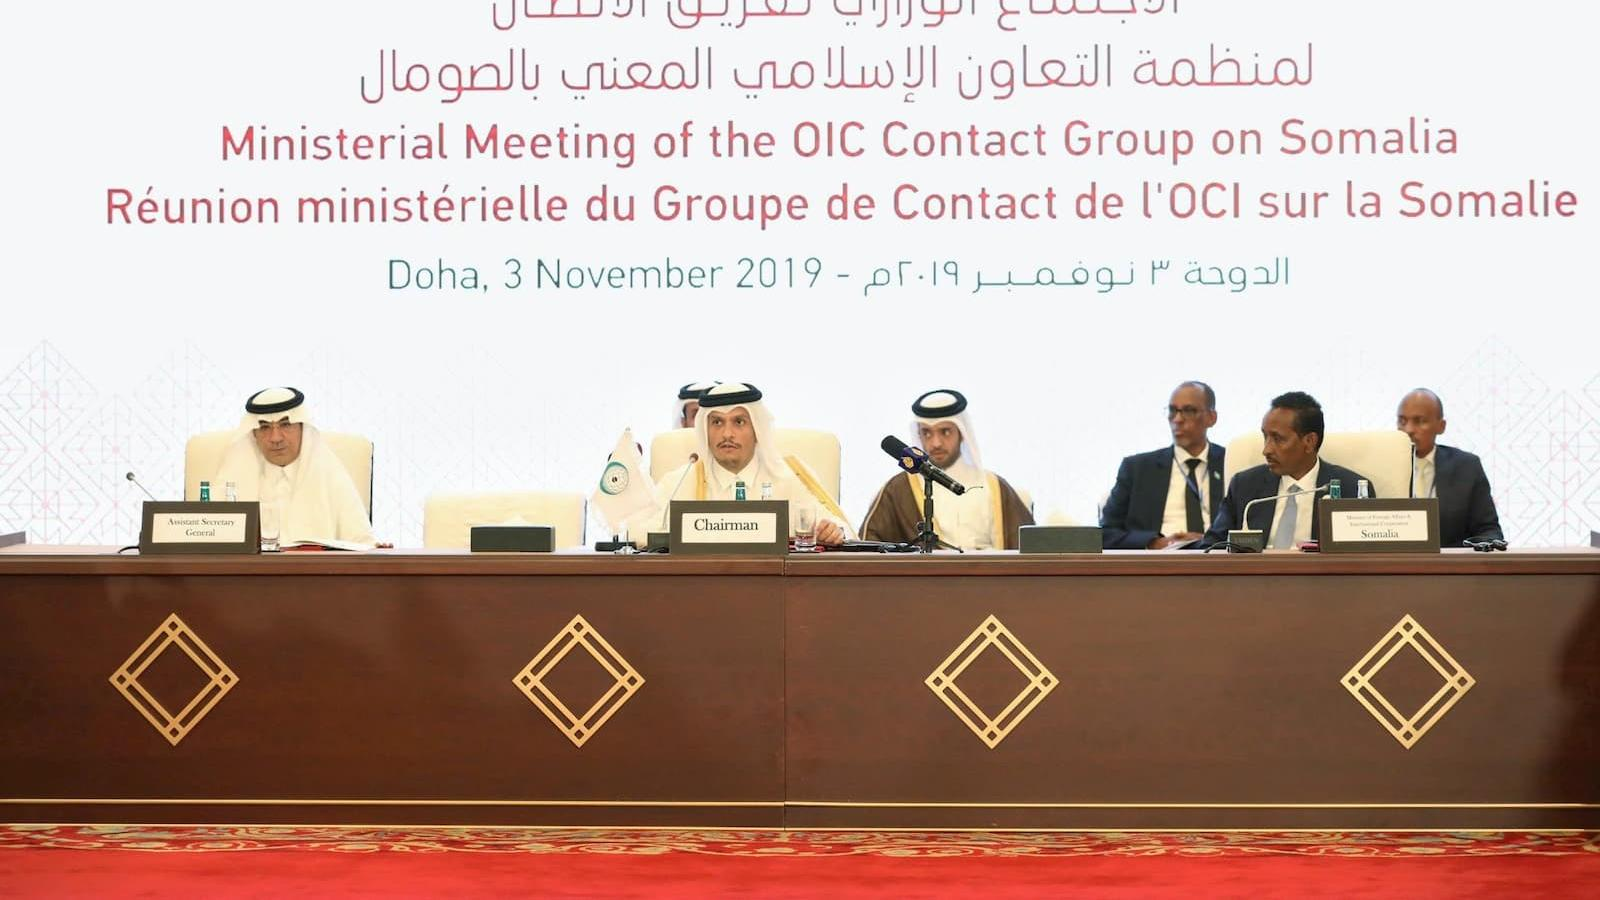 Qatar will continue to be a key supporter of Somalia, says FM